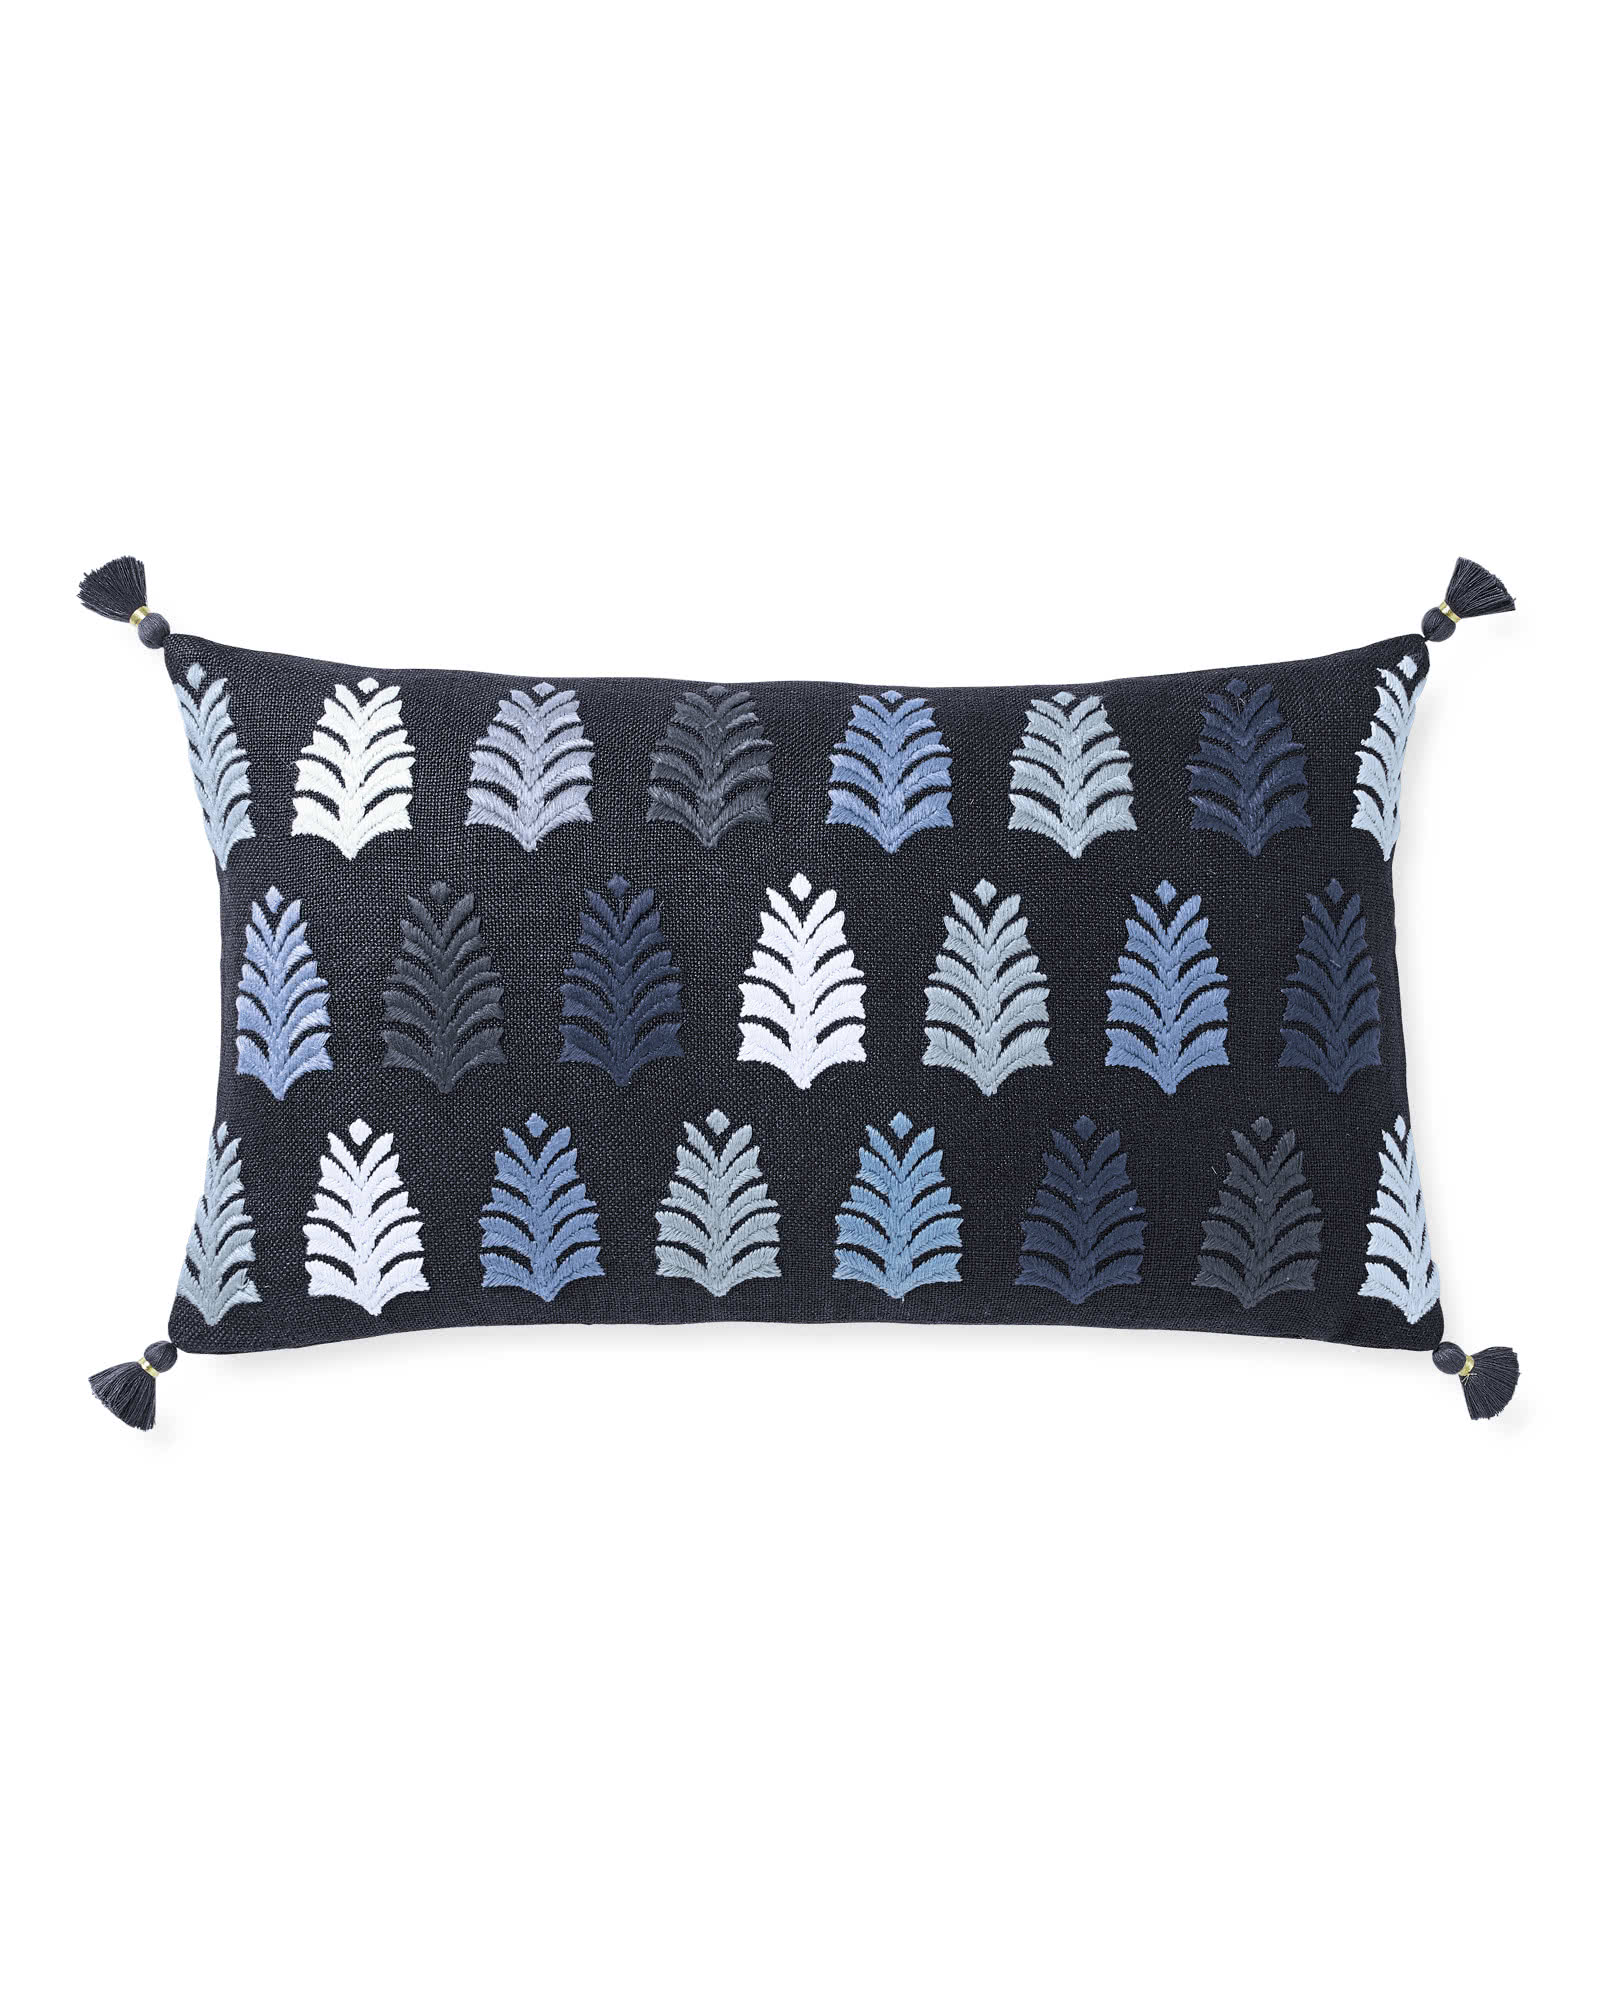 Whitley Embroidered Pillow Cover, Midnight